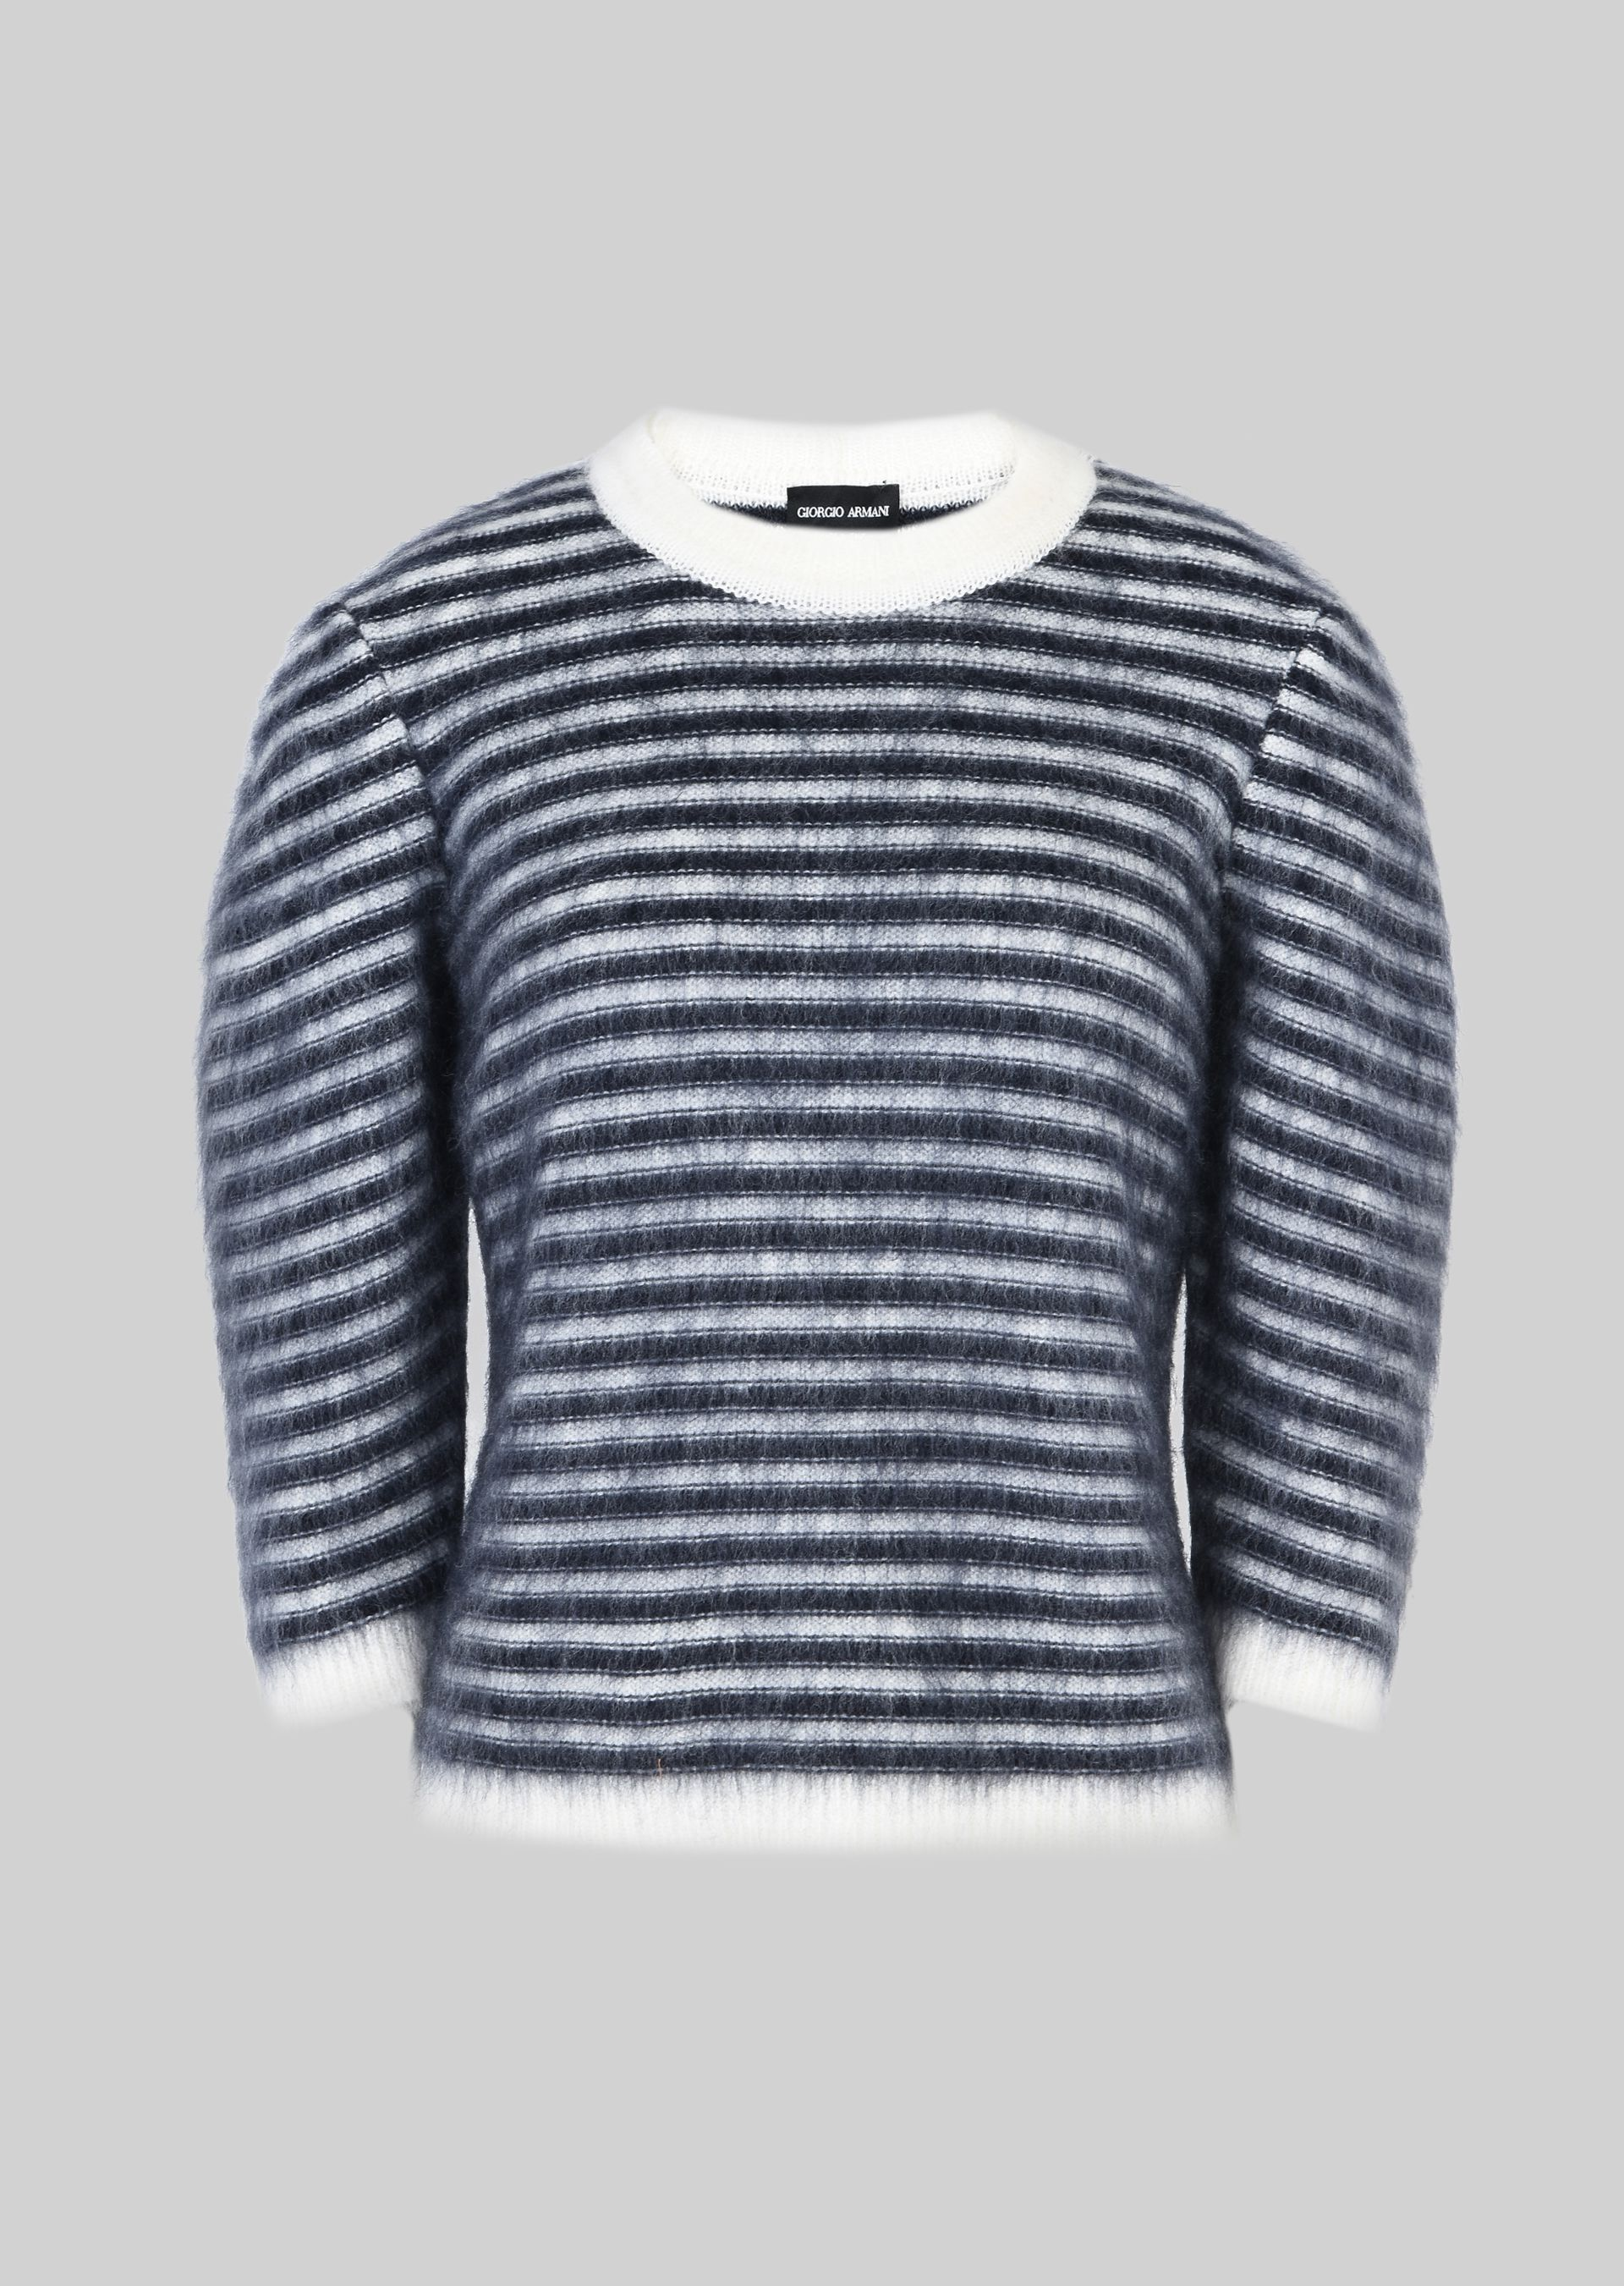 GIORGIO ARMANI SWEATER IN WOOL AND MOHAIR Sweater D r